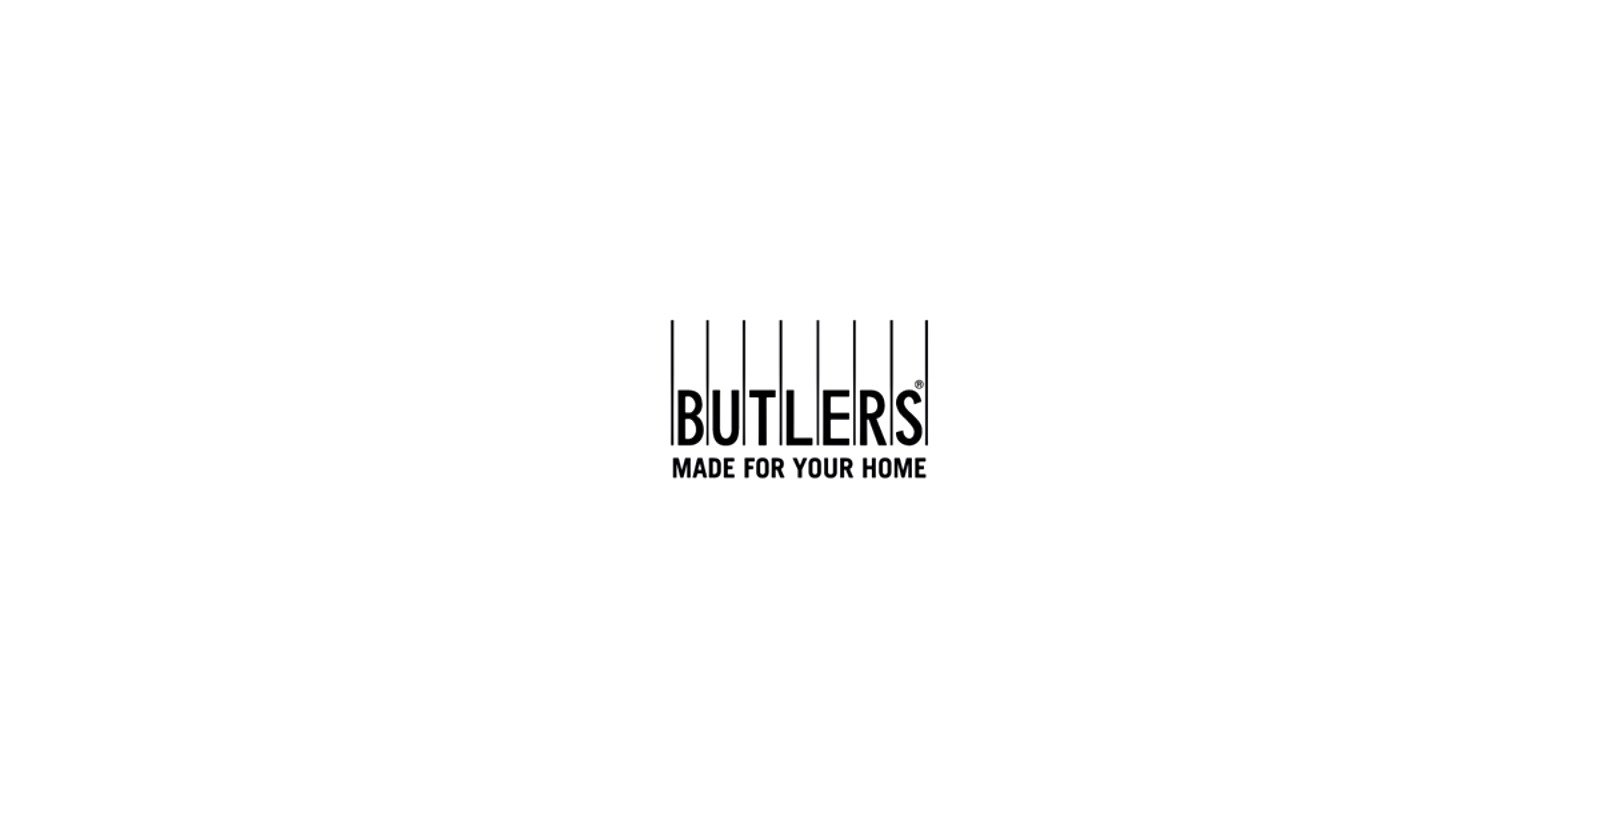 BUTLERS is coming to Malta